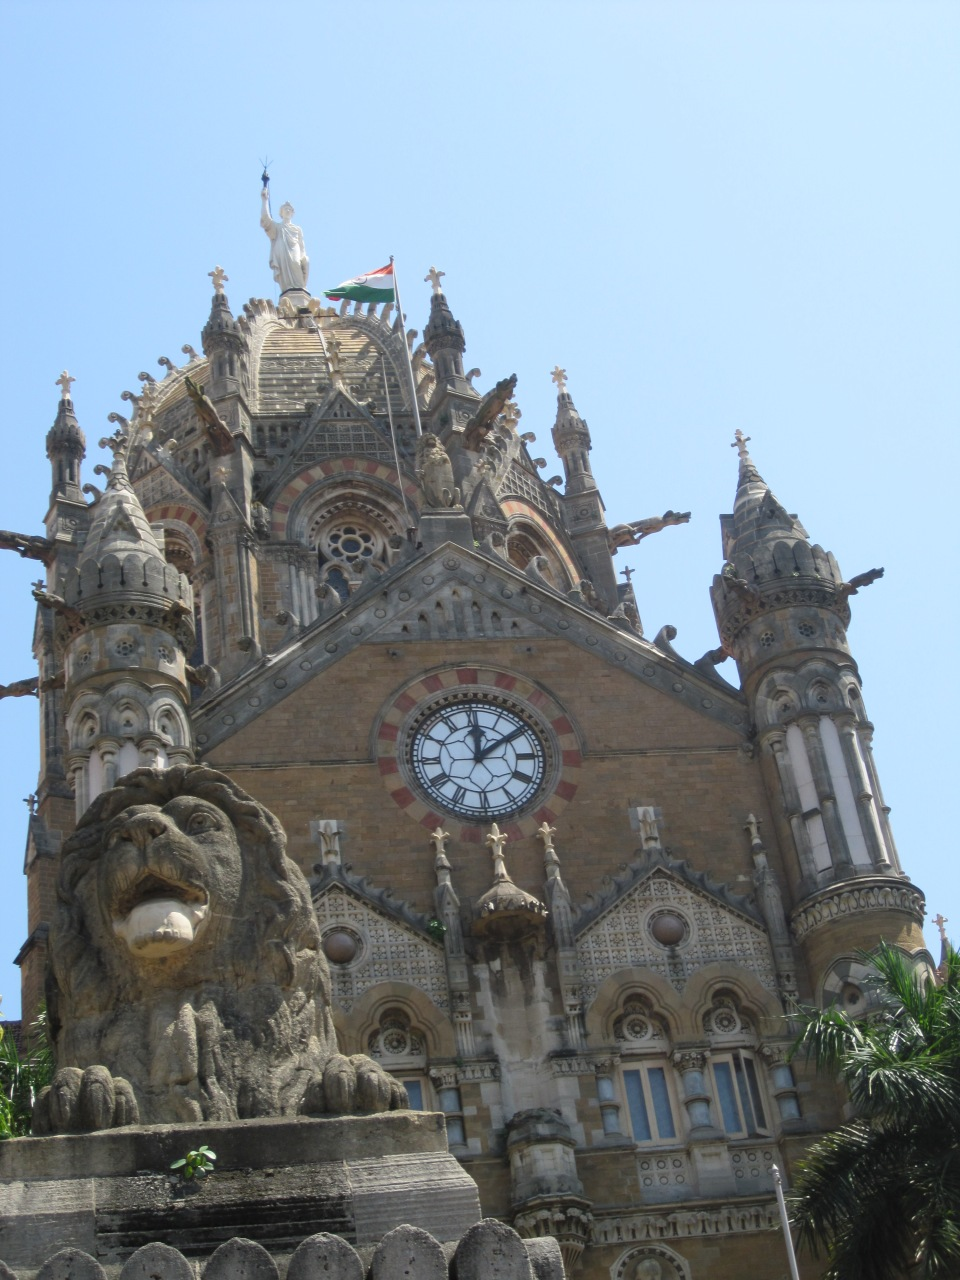 Chhatrapati Shivaji Terminus (CST), formerly known as Victoria Terminus